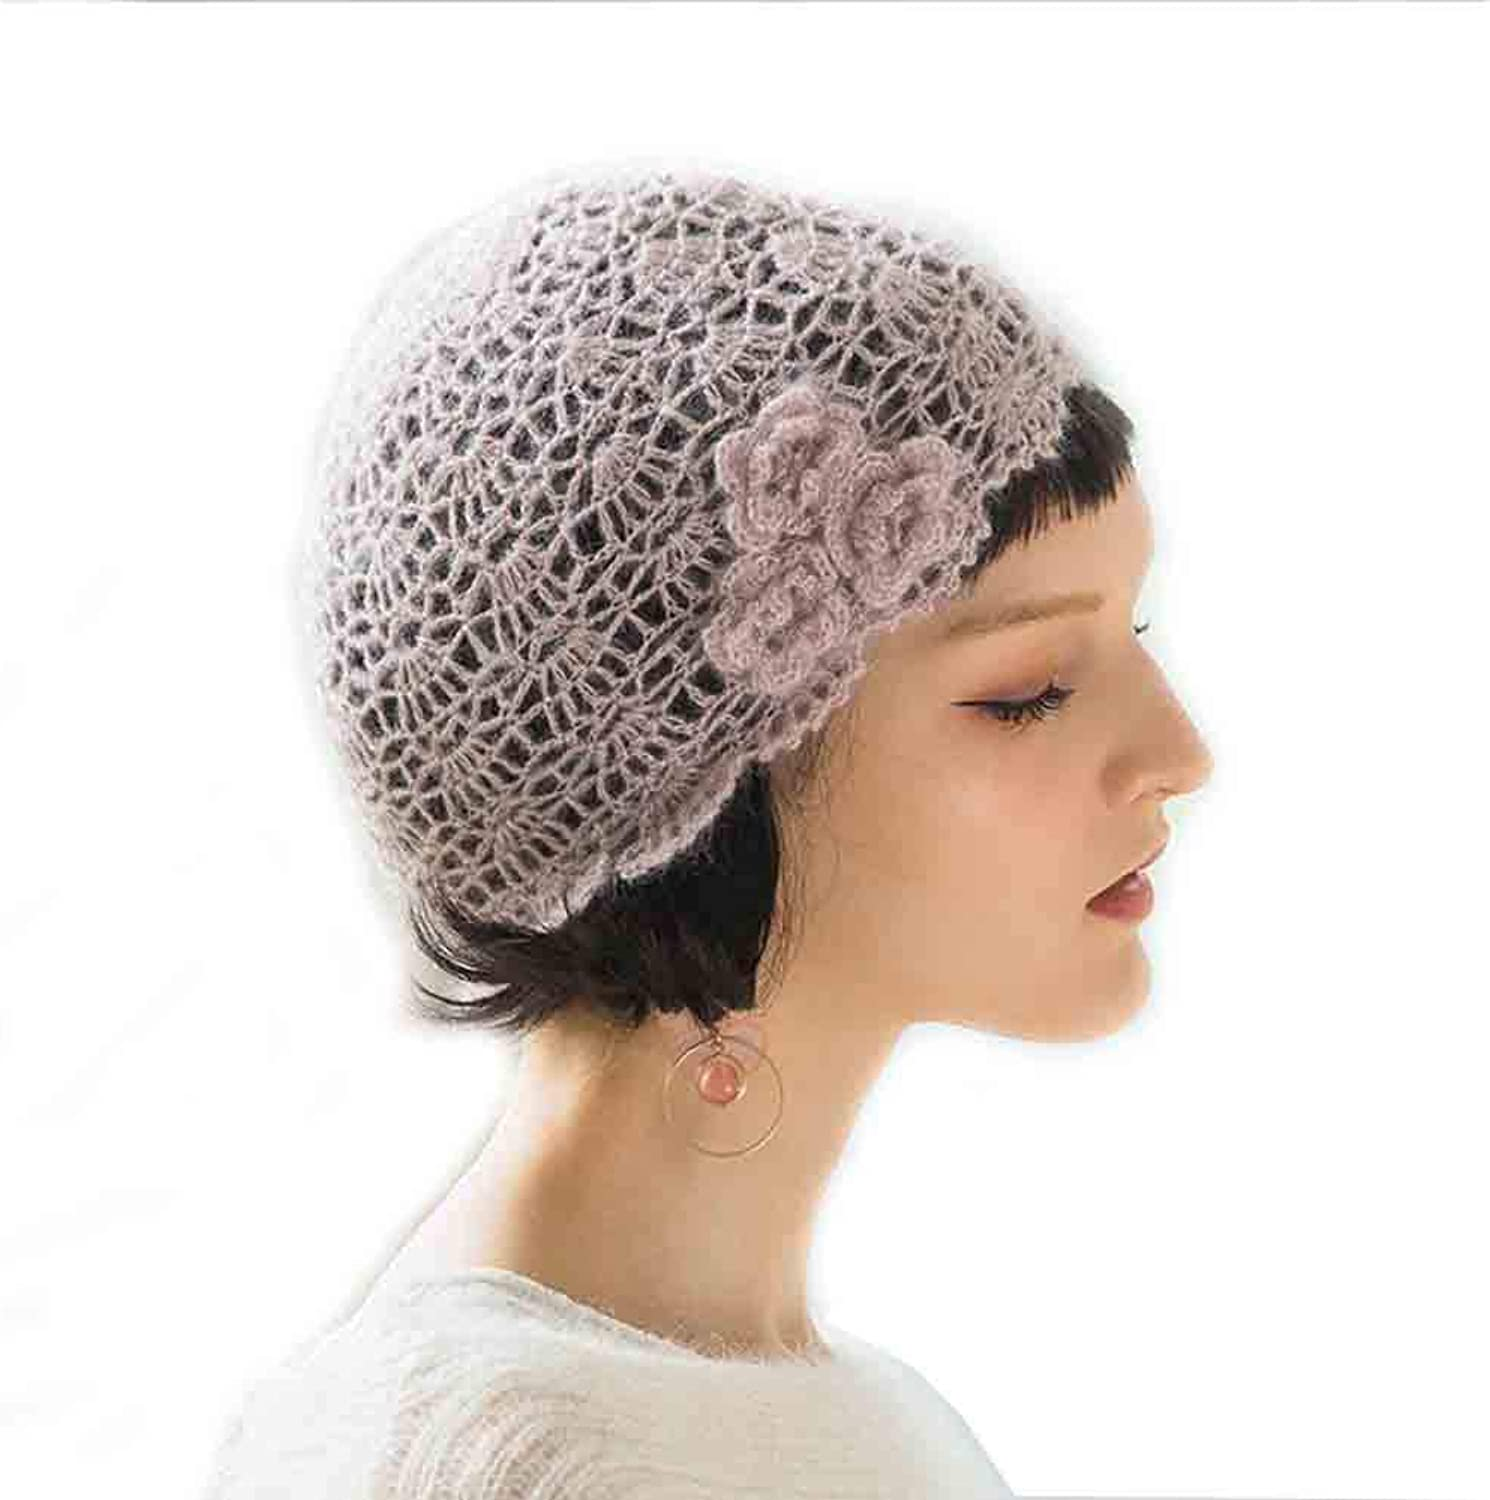 SUN Women's Autumn and Winter Casual Berets Cap, Flower Openwork Knit Sweet Cute,Solid color Knitted Baotou Cap (color   Pink Fog)